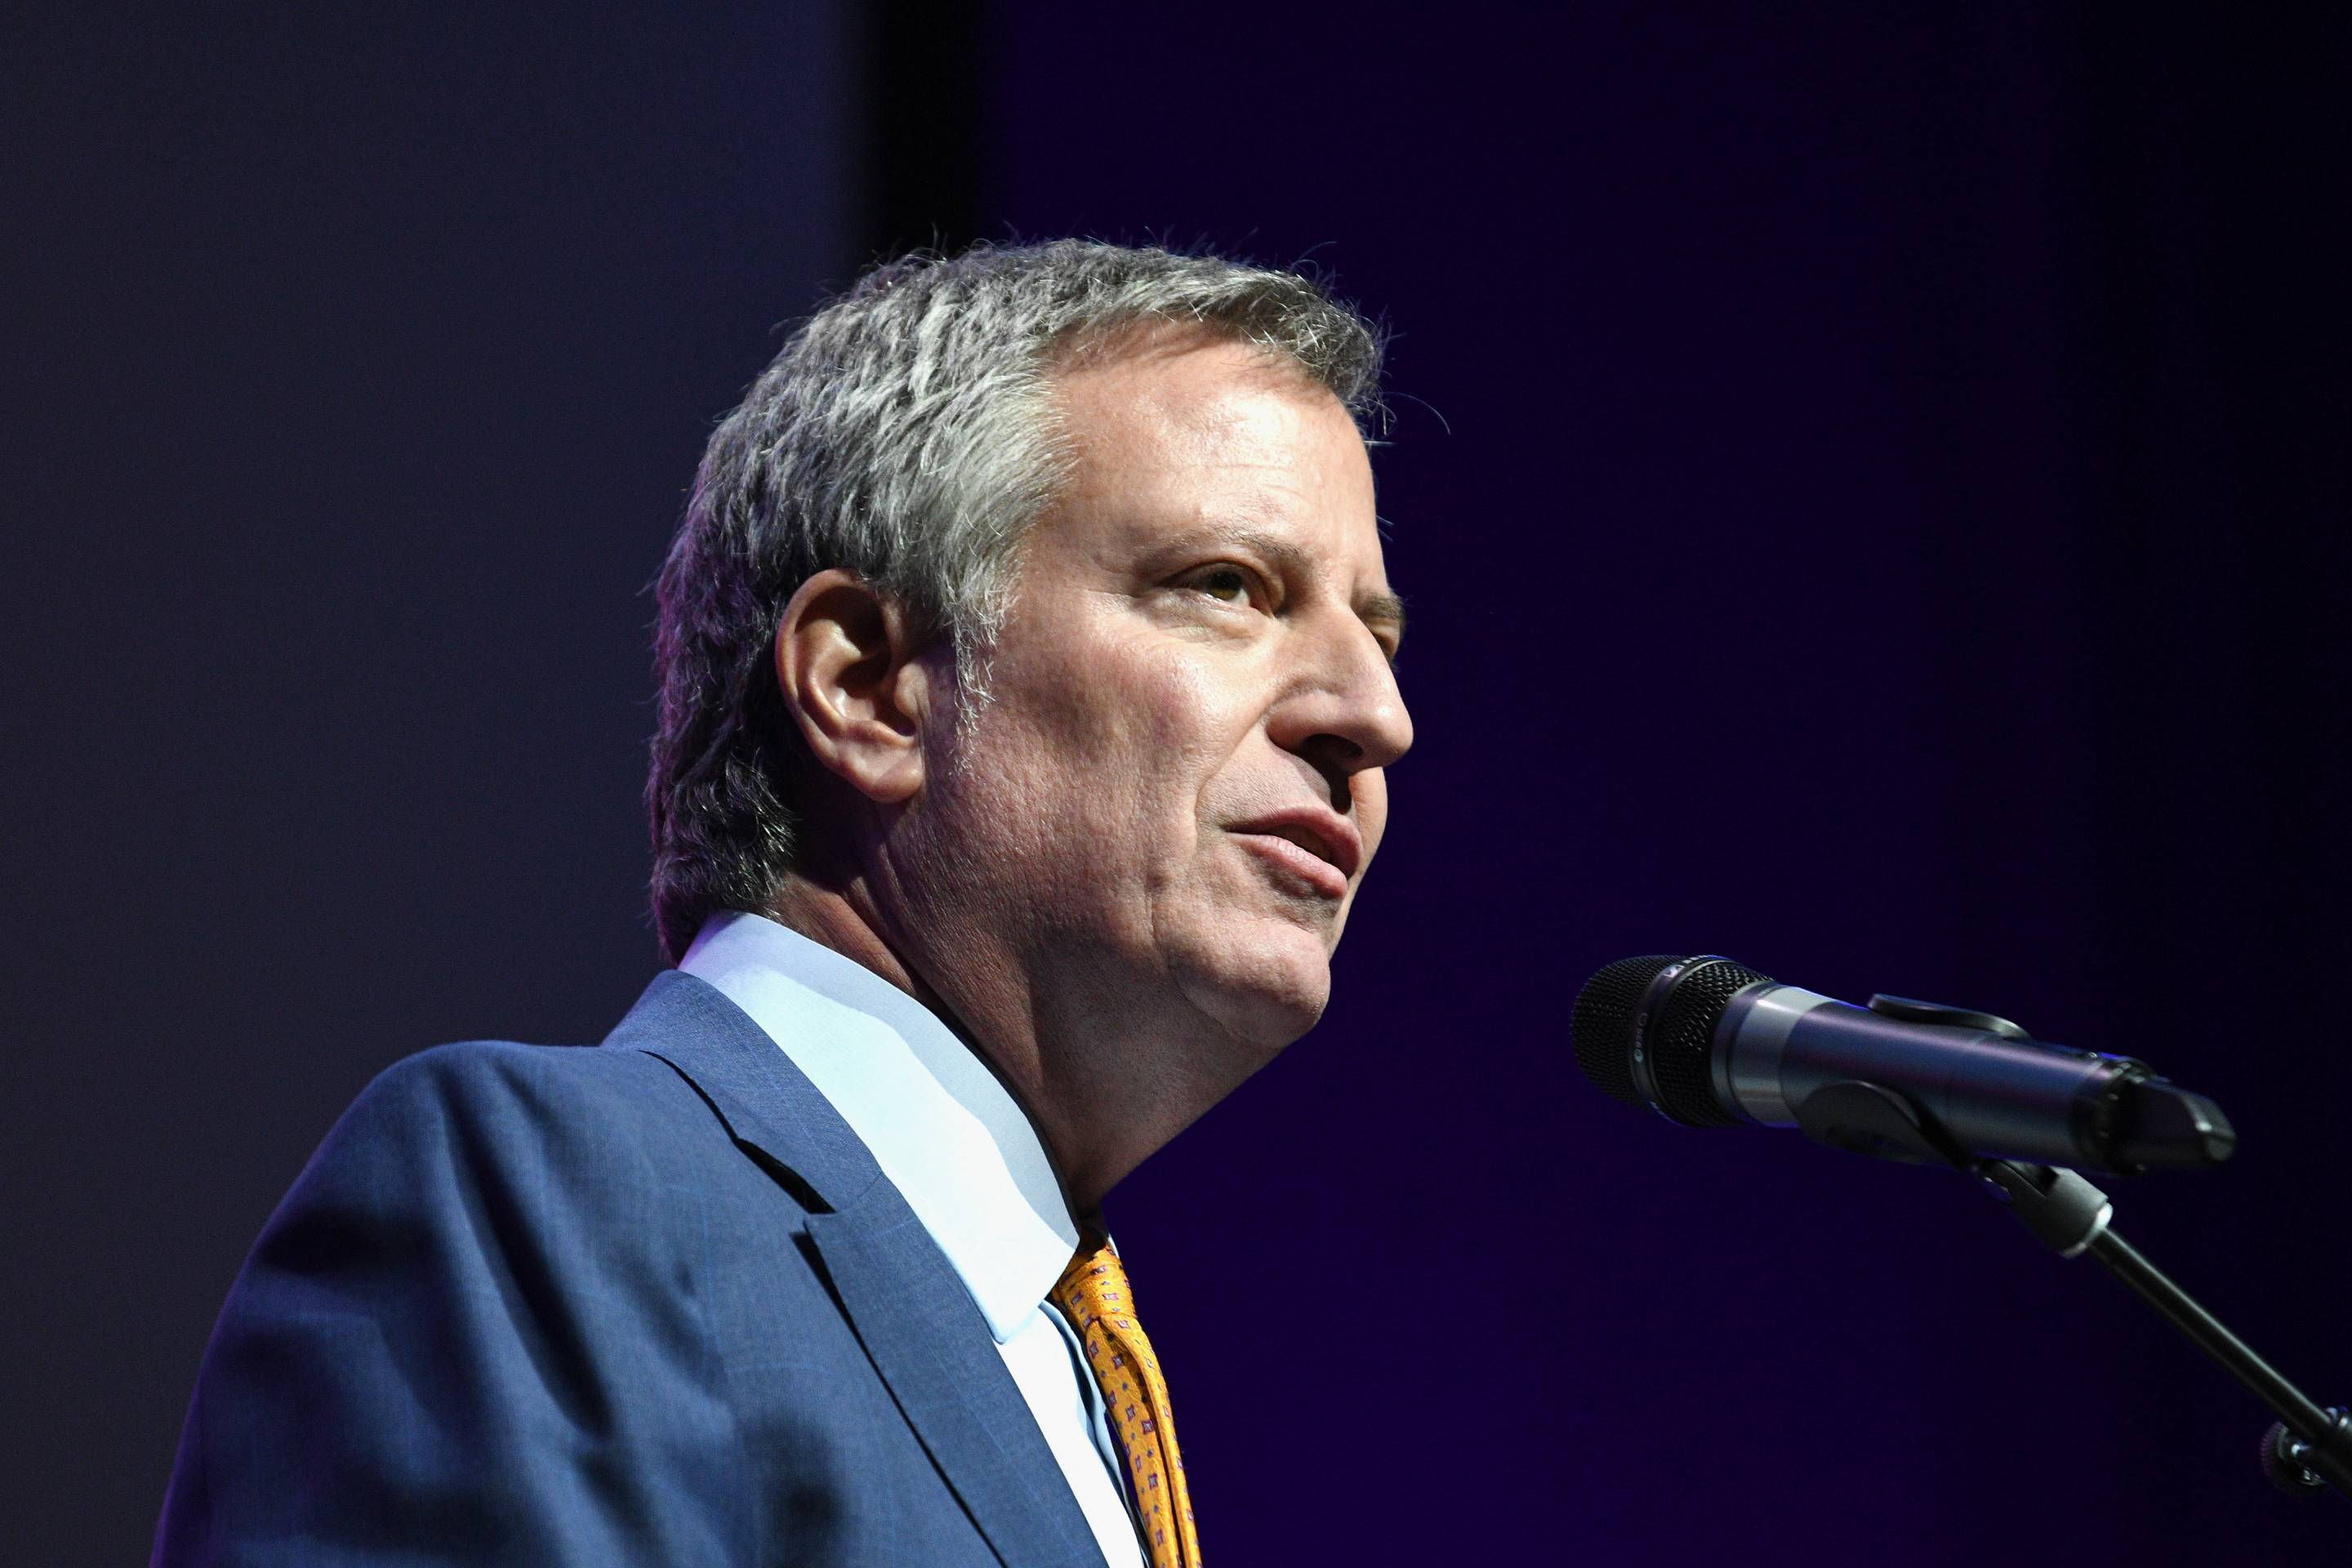 New York Mayor Bill de Blasio's Healthcare Plan Provides For Undocumented Citizens.